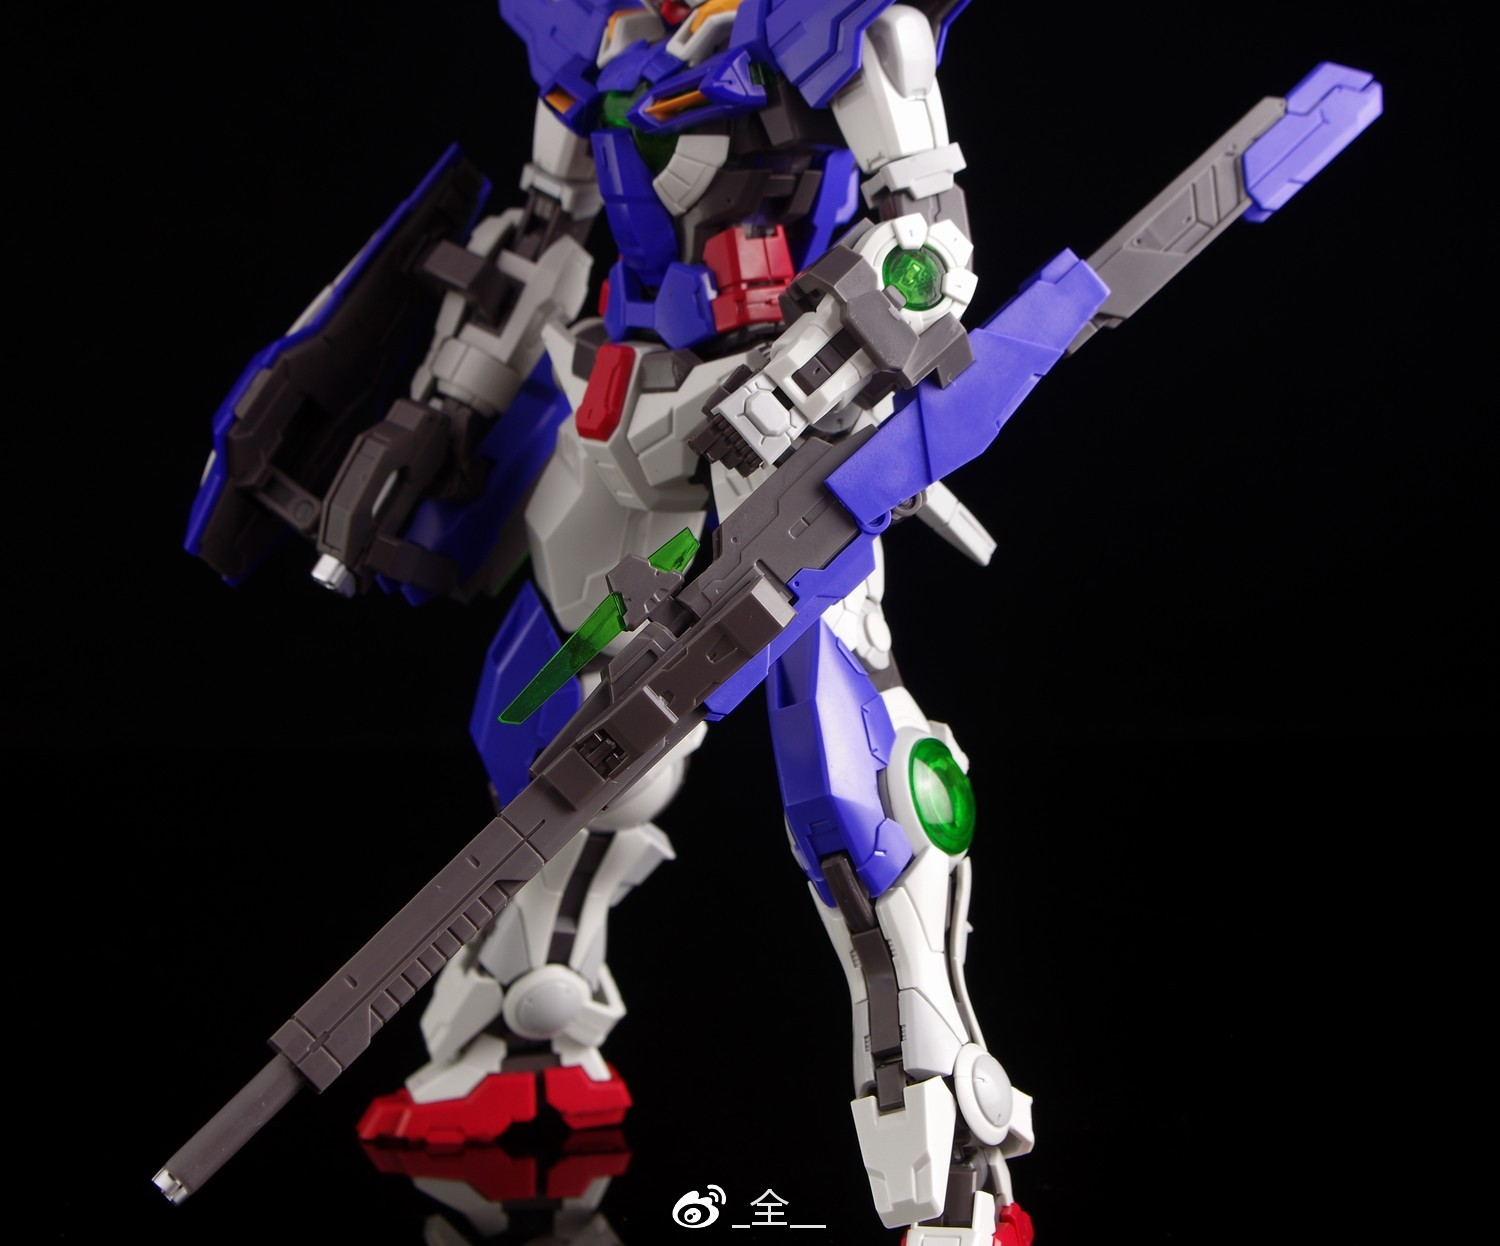 S269_mg_exia_led_hobby_star_inask_100.jpg